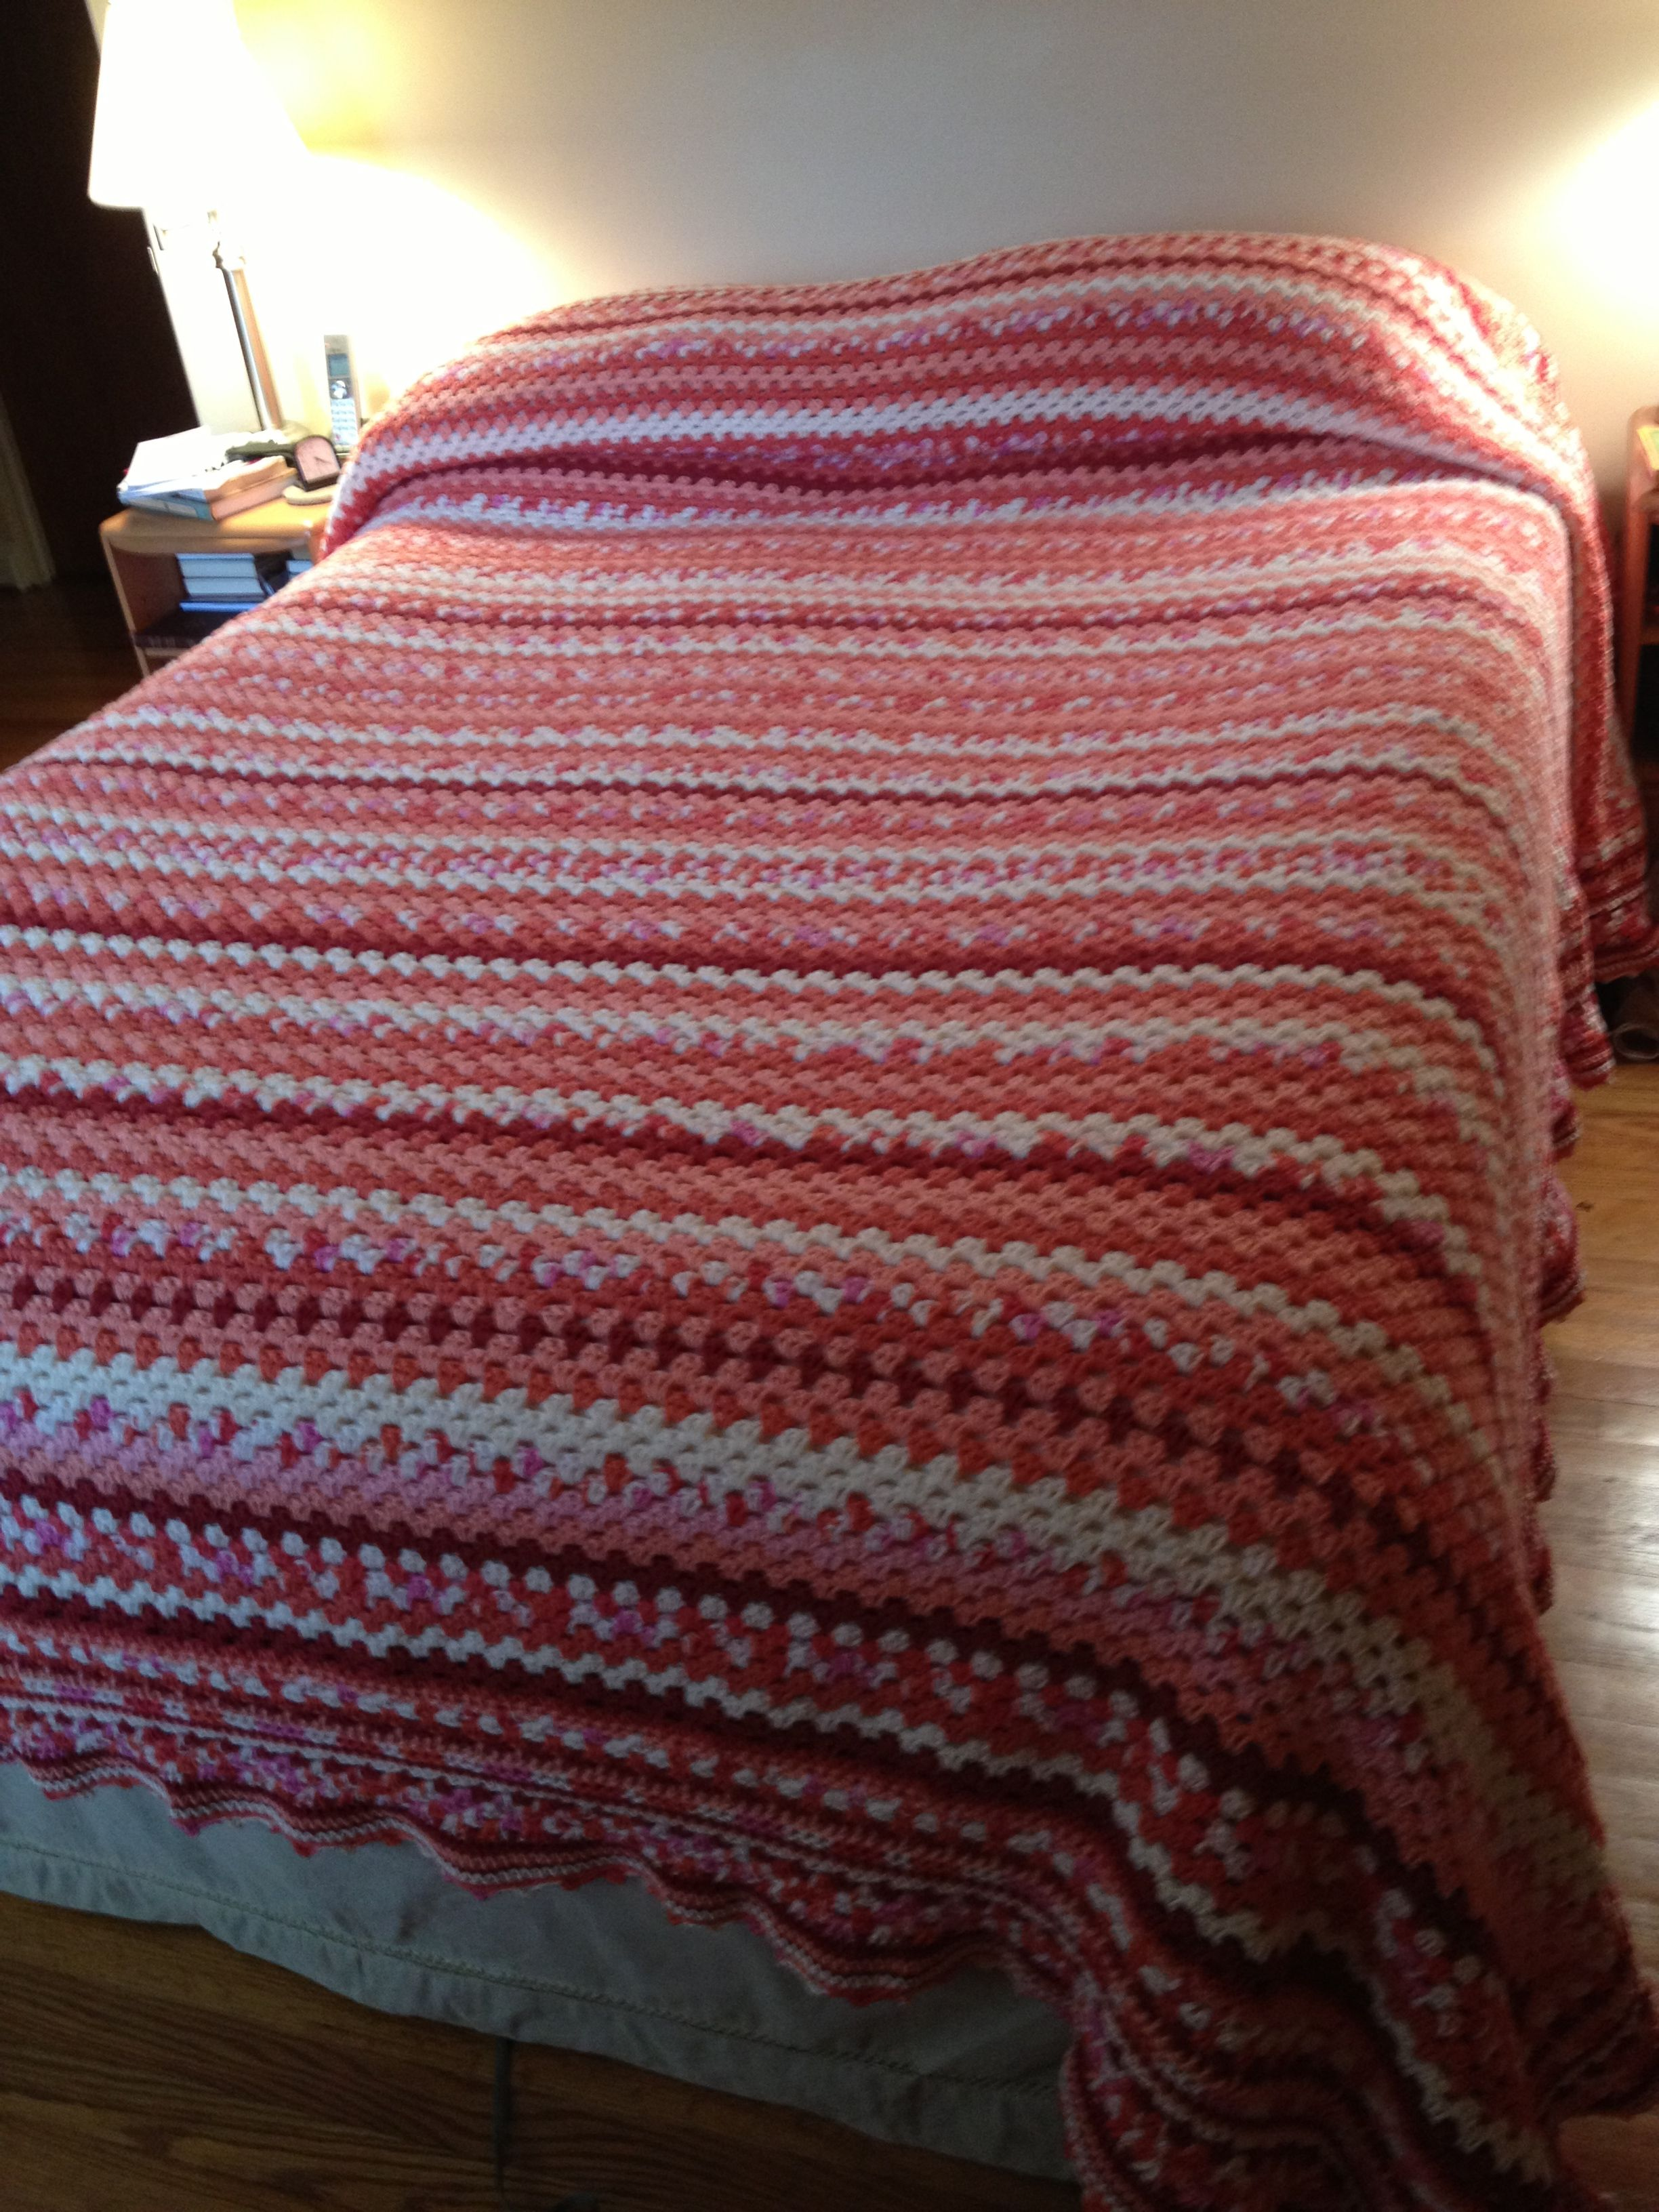 I crocheted this bedspread while sick with a kidney stone.  I love having it on my bed!  Nothing like homemade!   #sleepwell  @Matt Joyner Warehouse